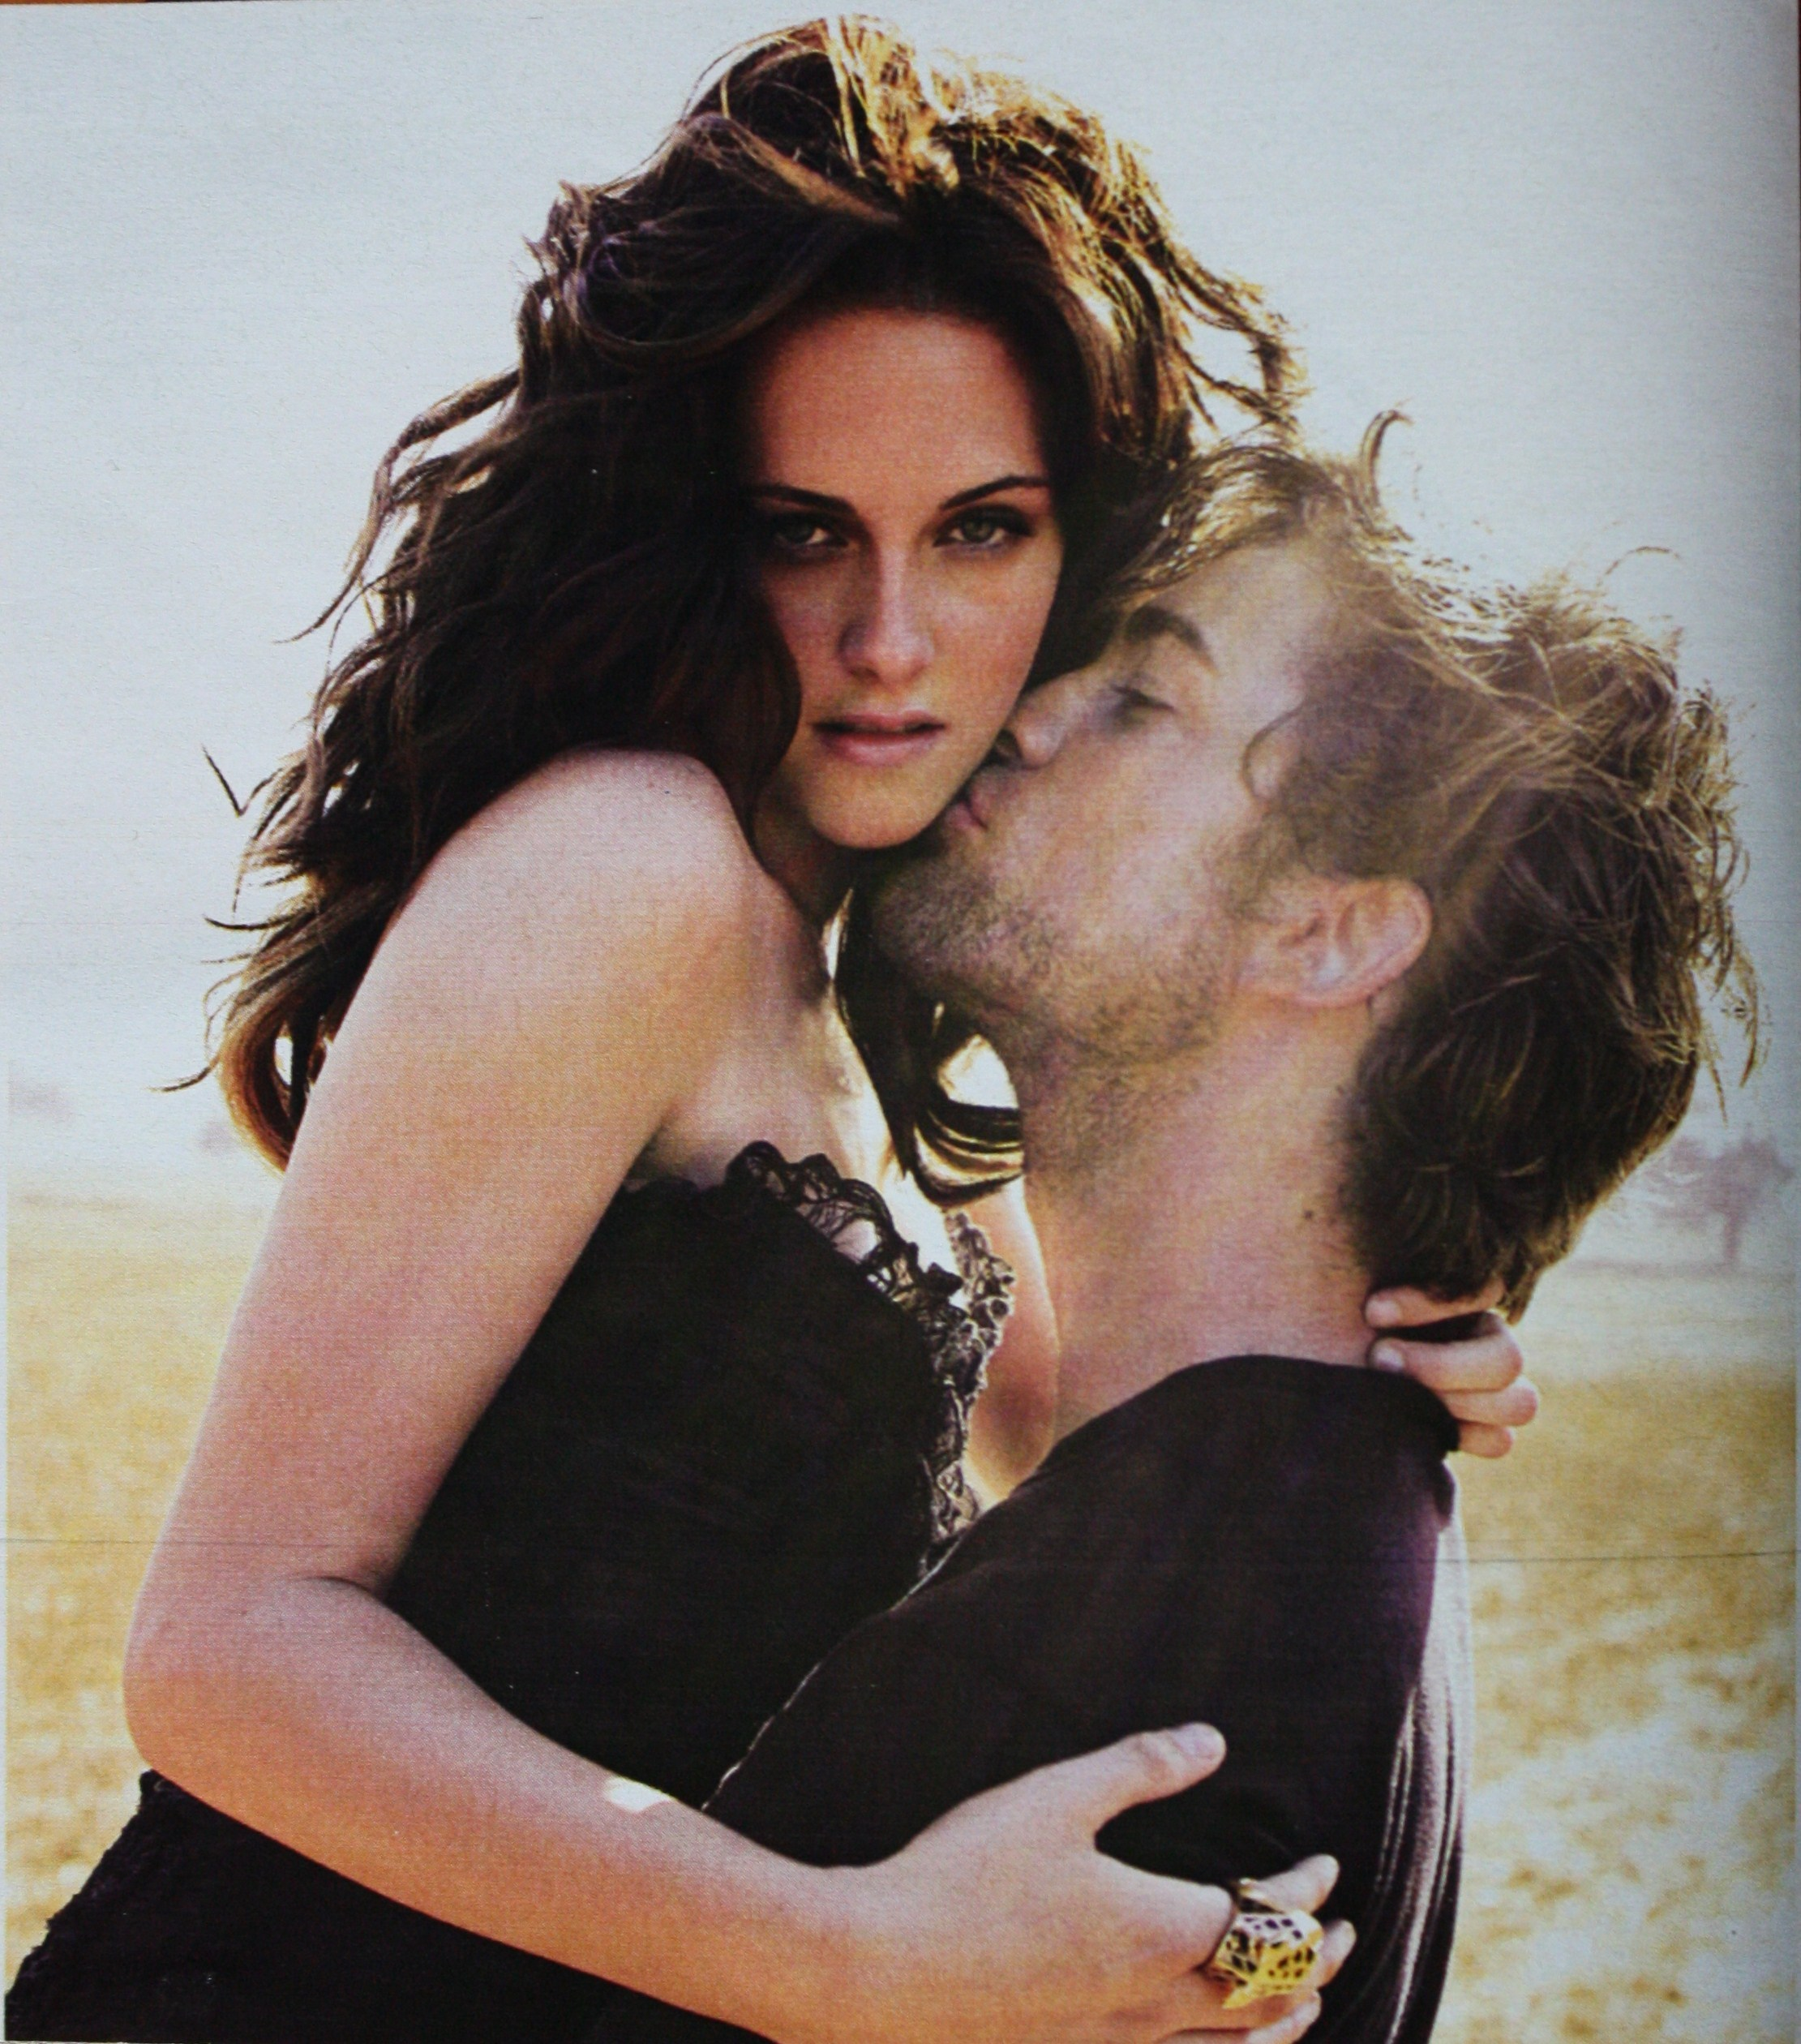 New Vanity Fair Outtakes (OMGGGGGGGGGGGGGGGGGGGGGGGGGGGGGGGGGGGGGGGGGGGGGG)